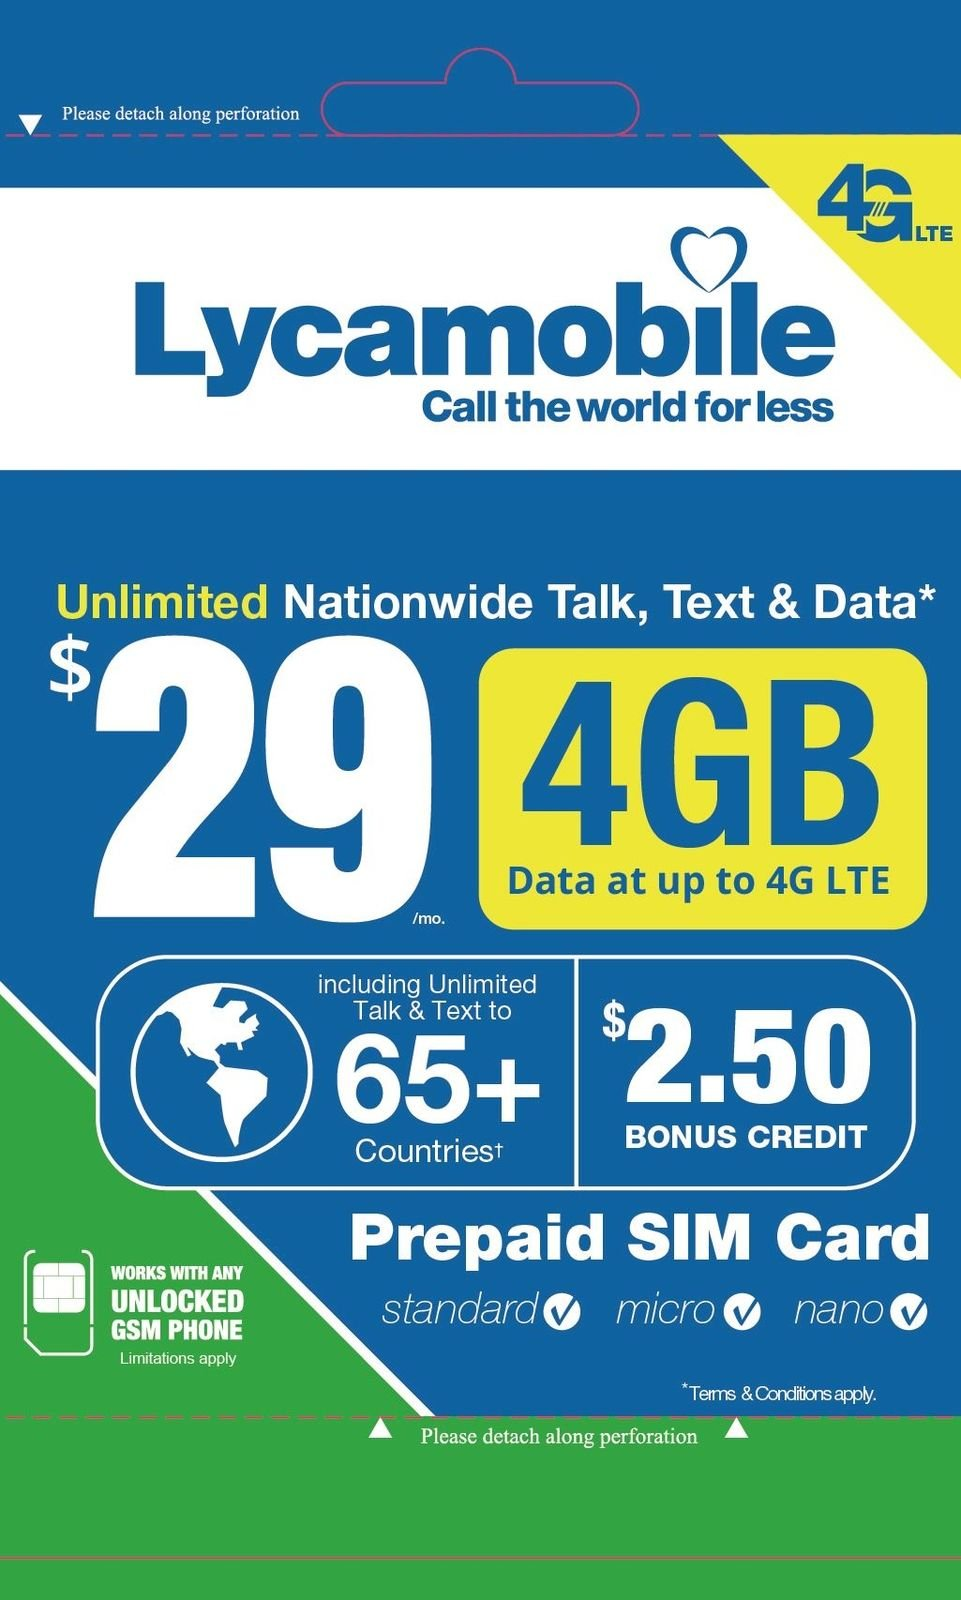 Lycamobile $29 Plan 1st Month Included SIM Card is Triple Cut Unlimited Natl Talk & Text to US and 65+ Countries 4GB Of 4G LTE by Spartan Technologies